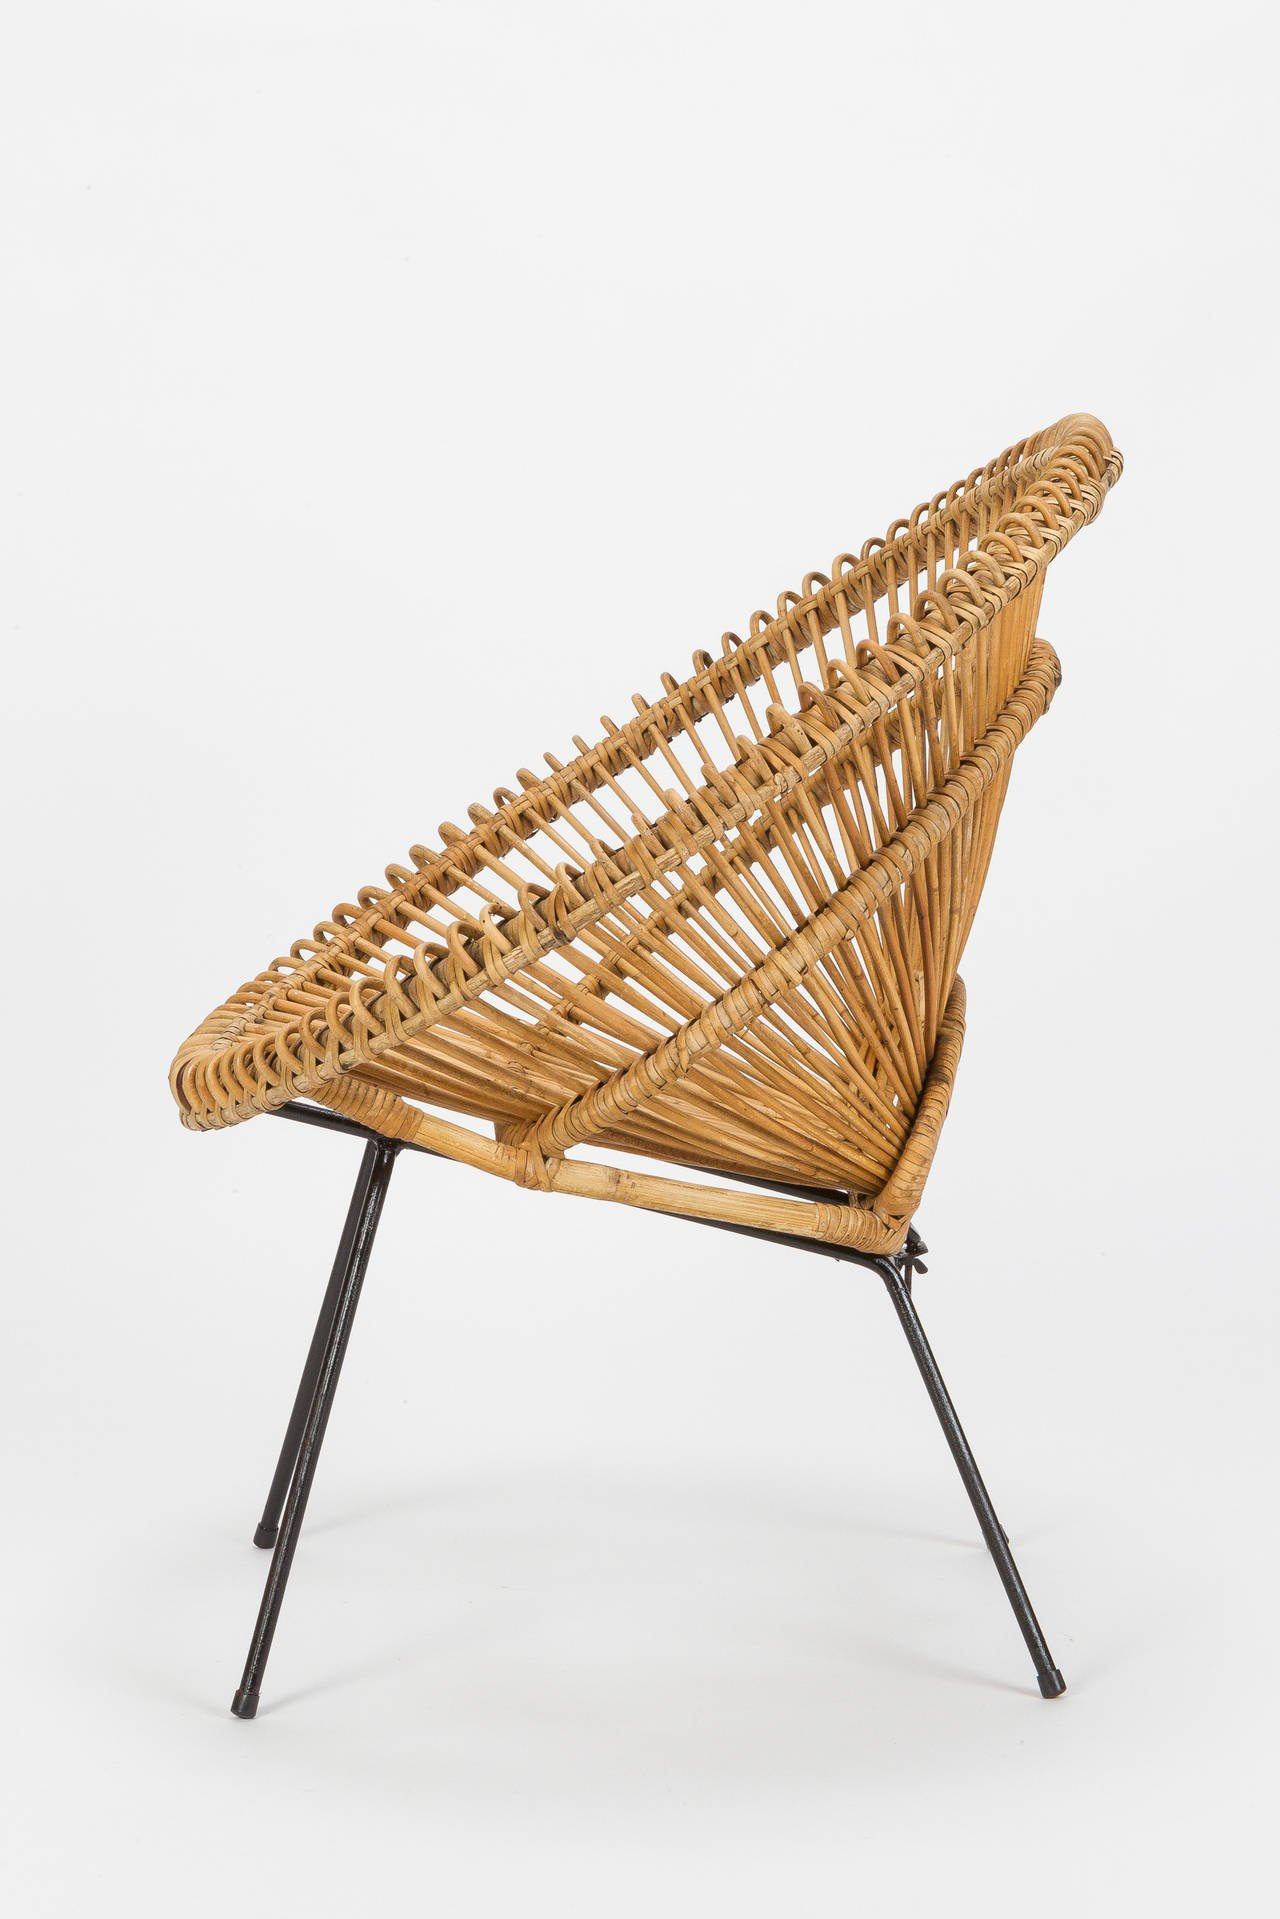 french wicker chair attributed to janine abraham u0026 dirk jan rol, ... wpbrlqb